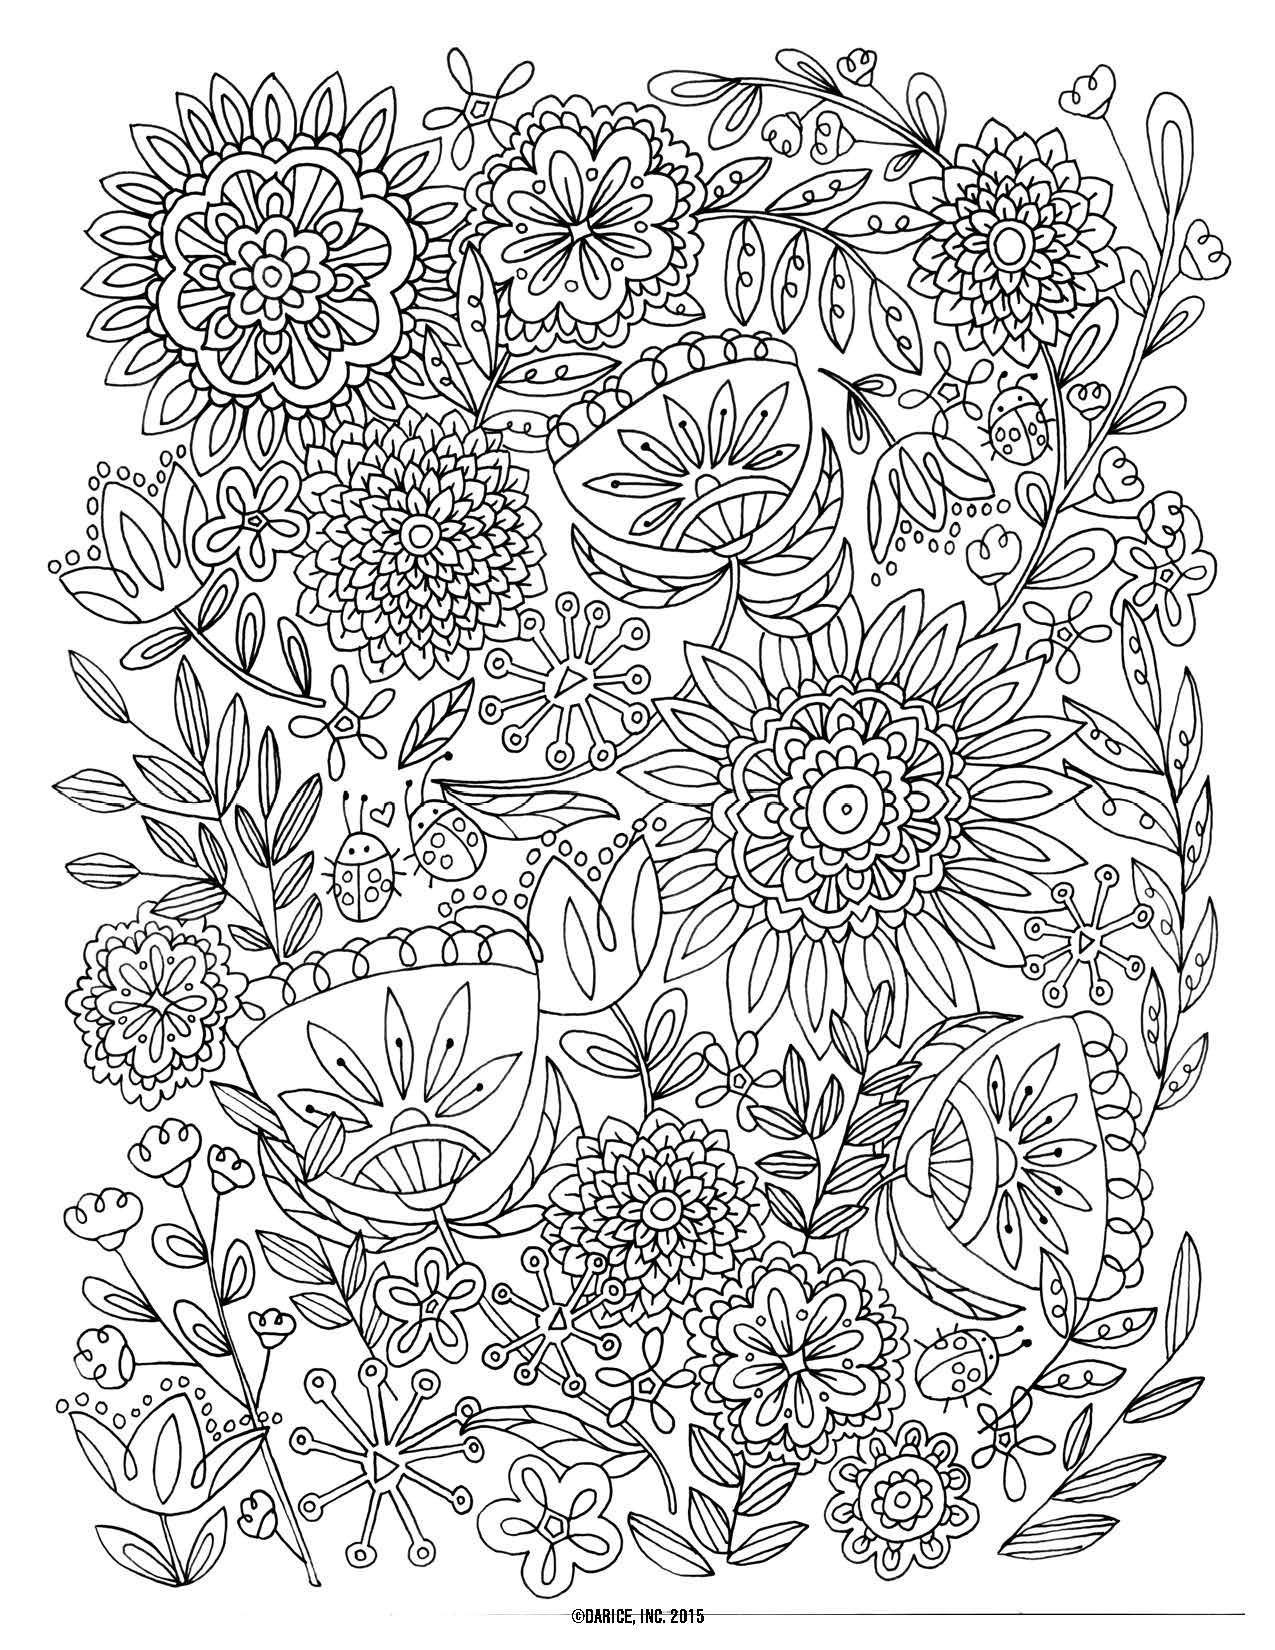 proflowers free vase of 23 flowers in a vase the weekly world for cool vases flower vase coloring page pages flowers in a top i 0d